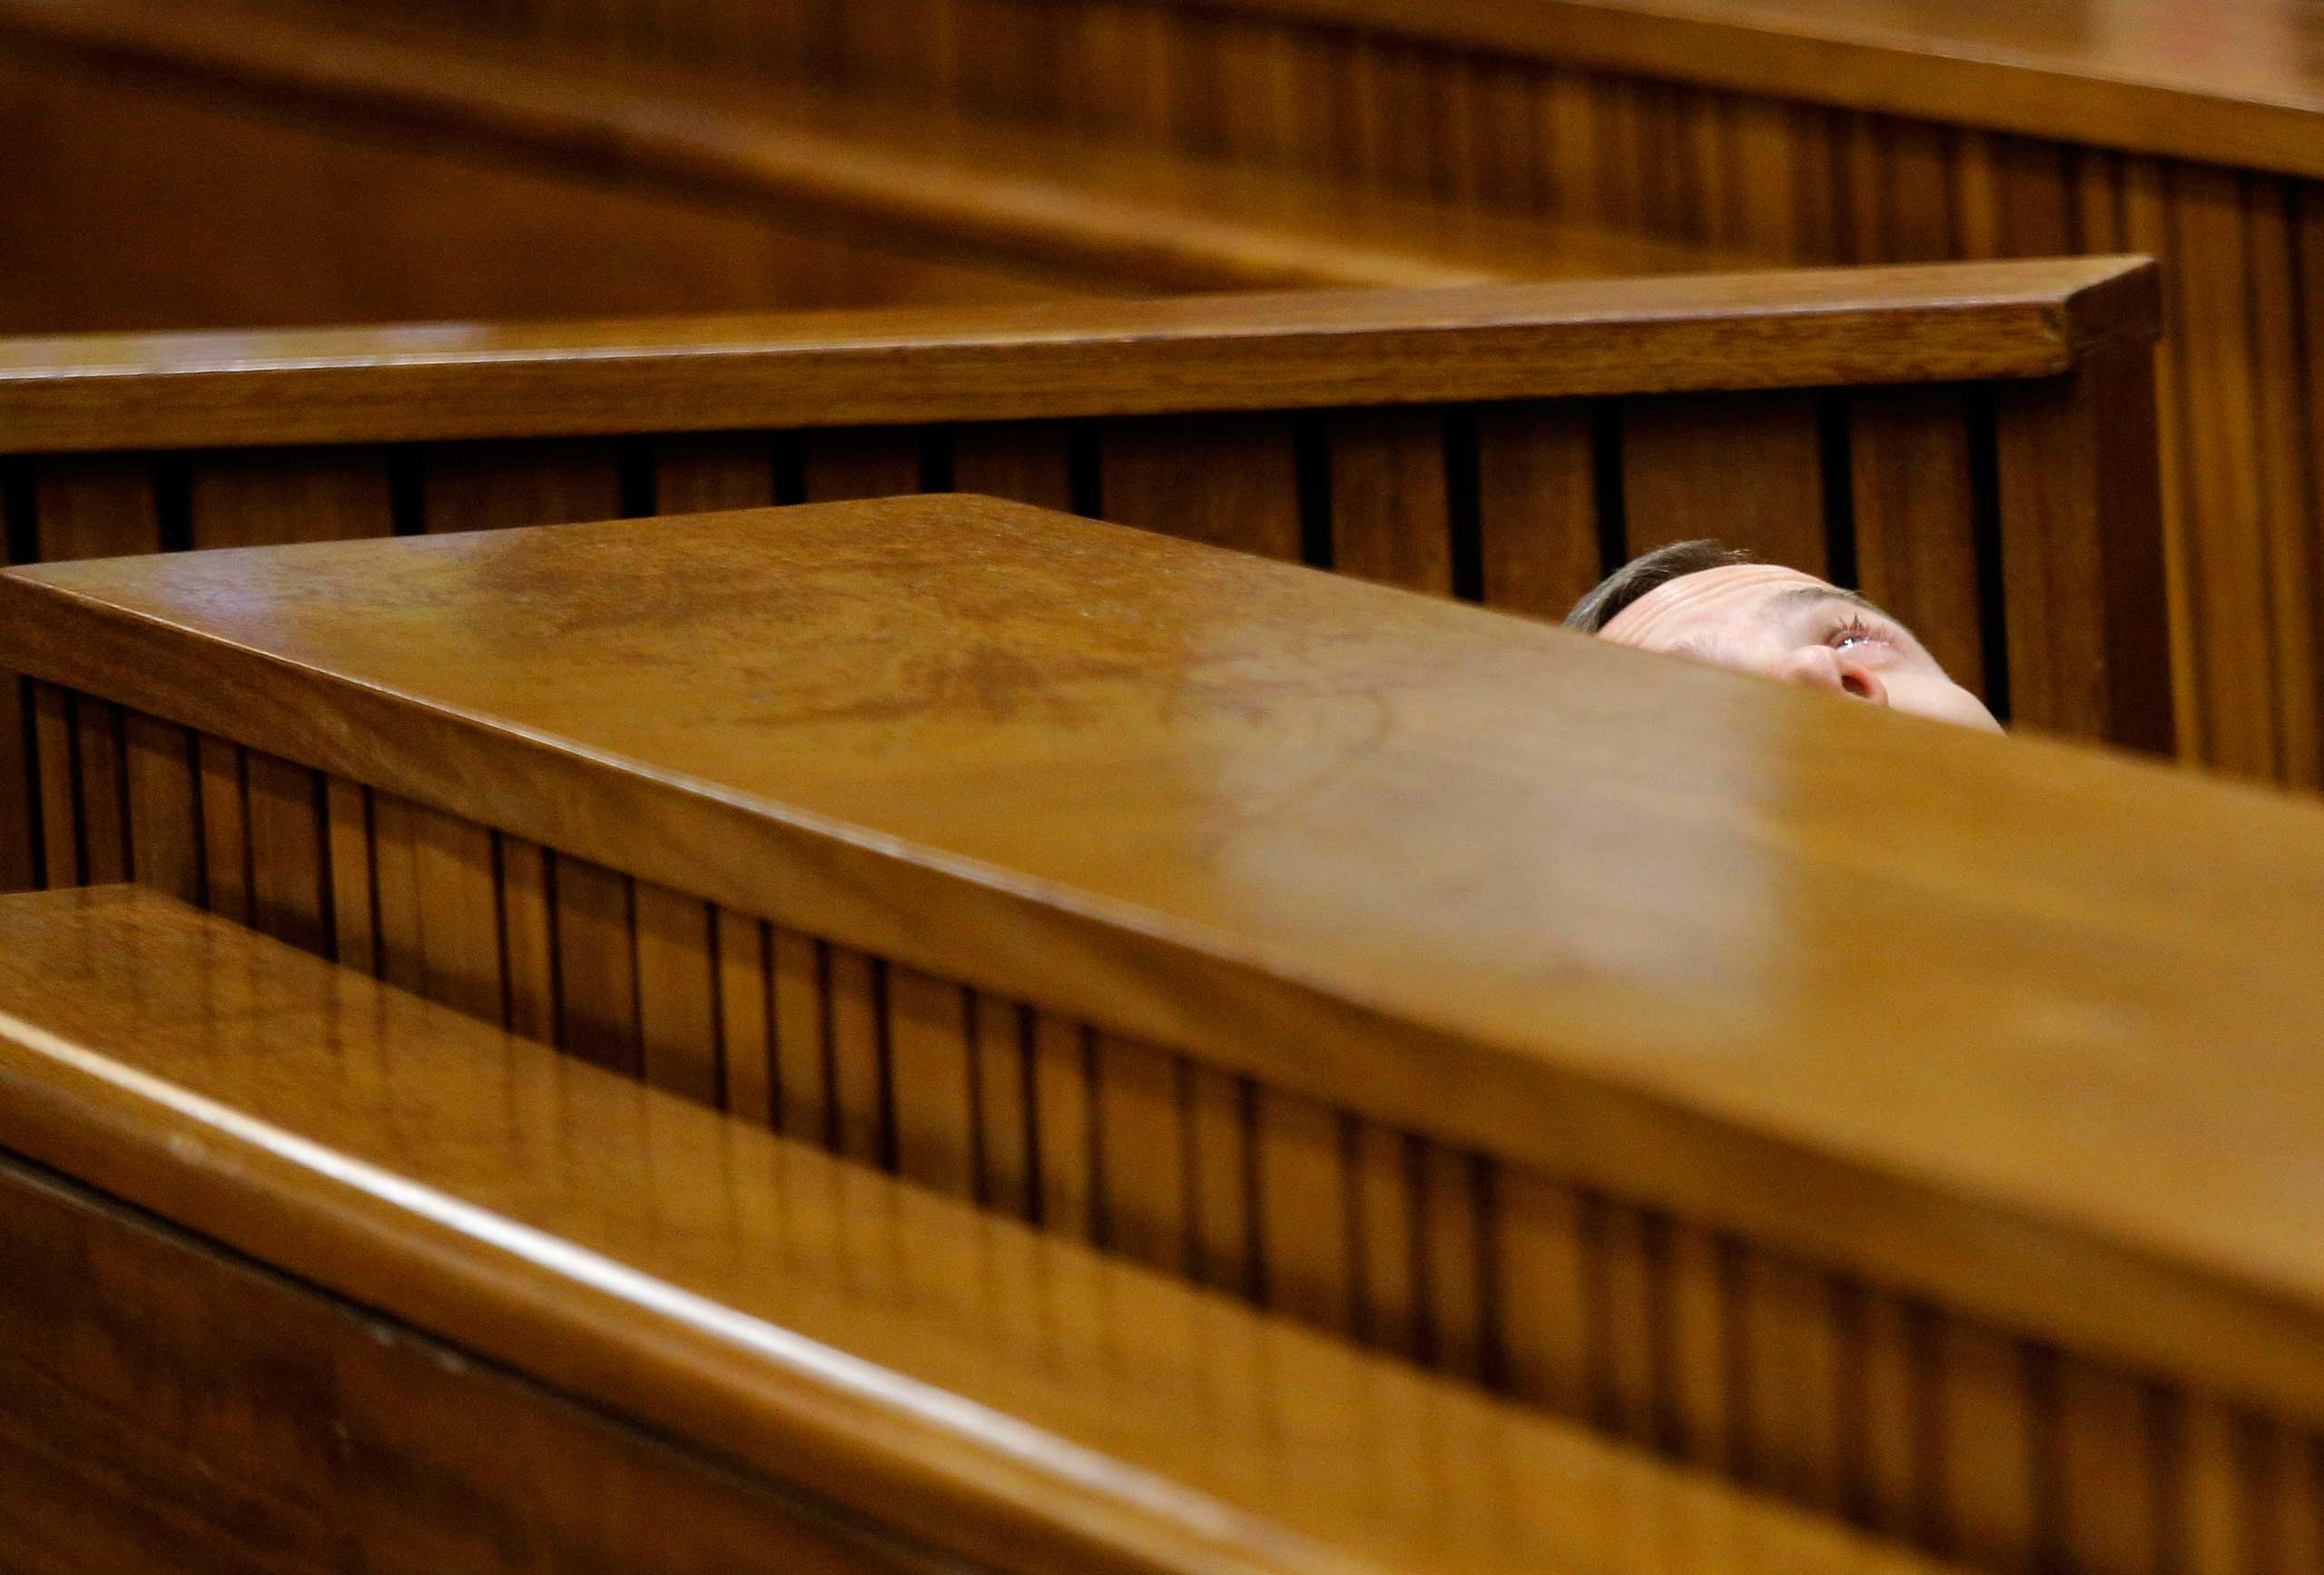 South African Paralympic athlete Oscar Pistorius is seen leaning back after applying eye drops as he prepares himself for another day in the dock during his murder trial in Pretoria, South Africa, March 14, 2014.